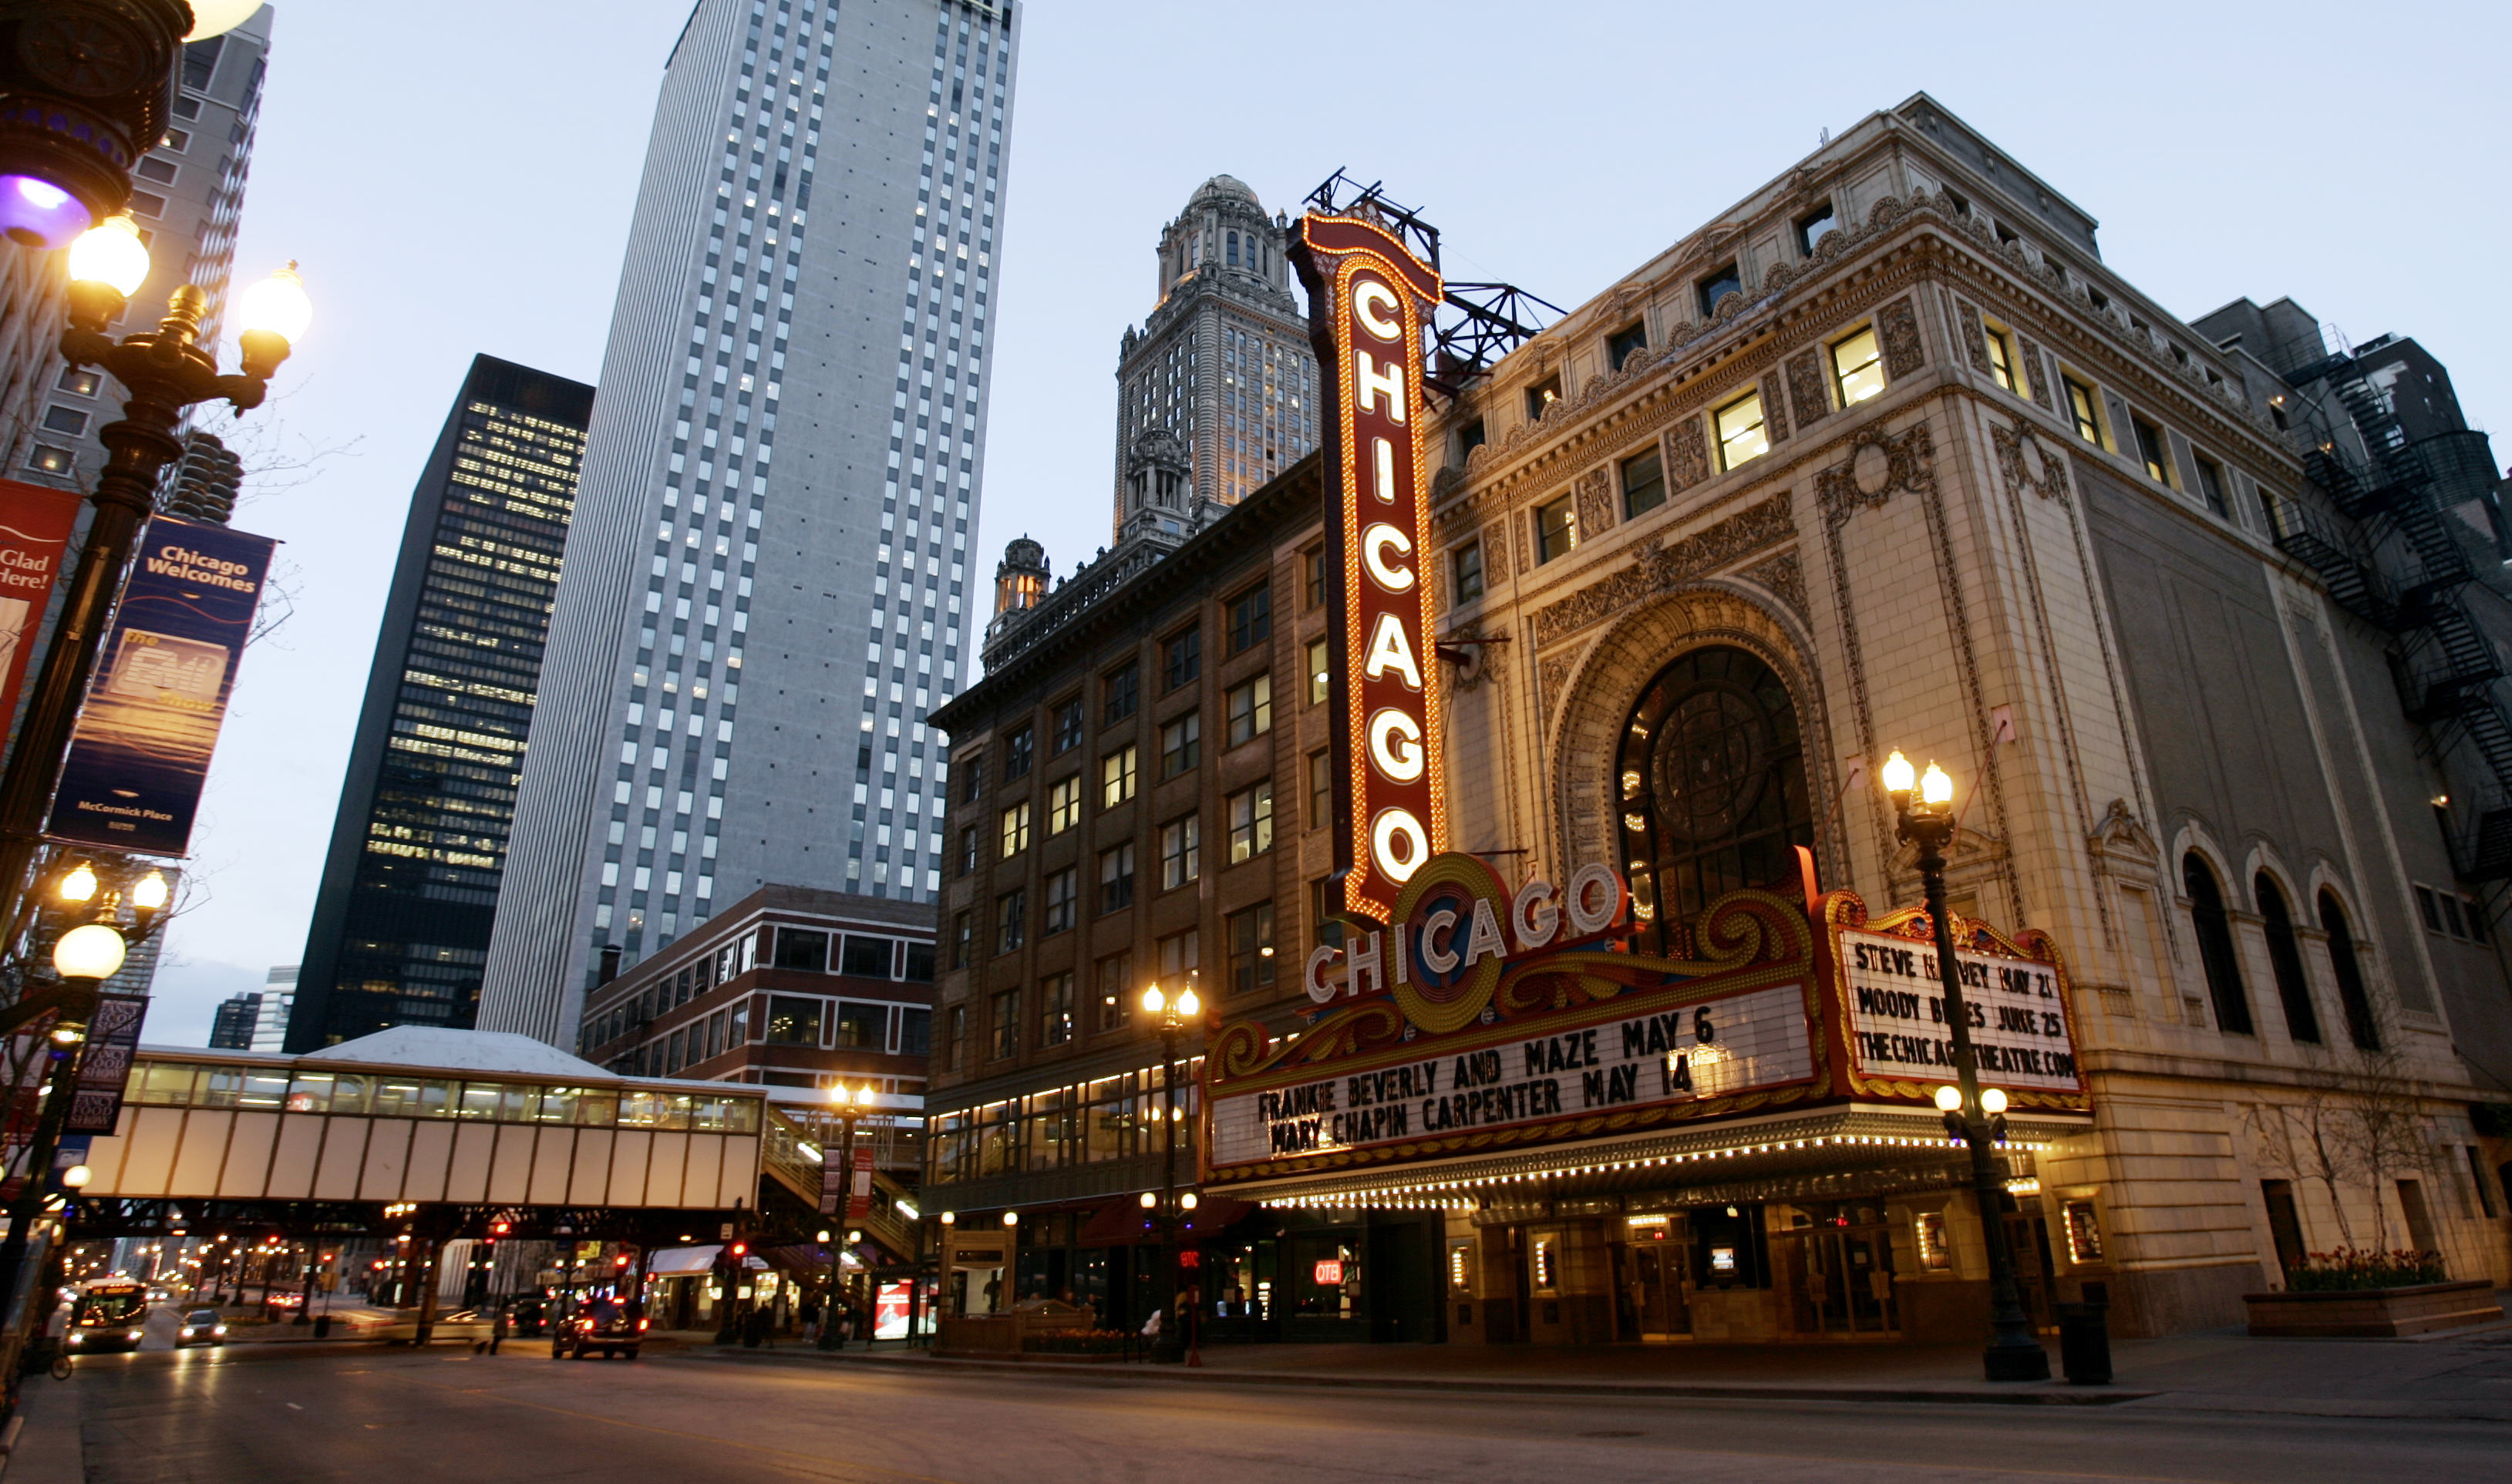 The famous Chicago Theater along State S